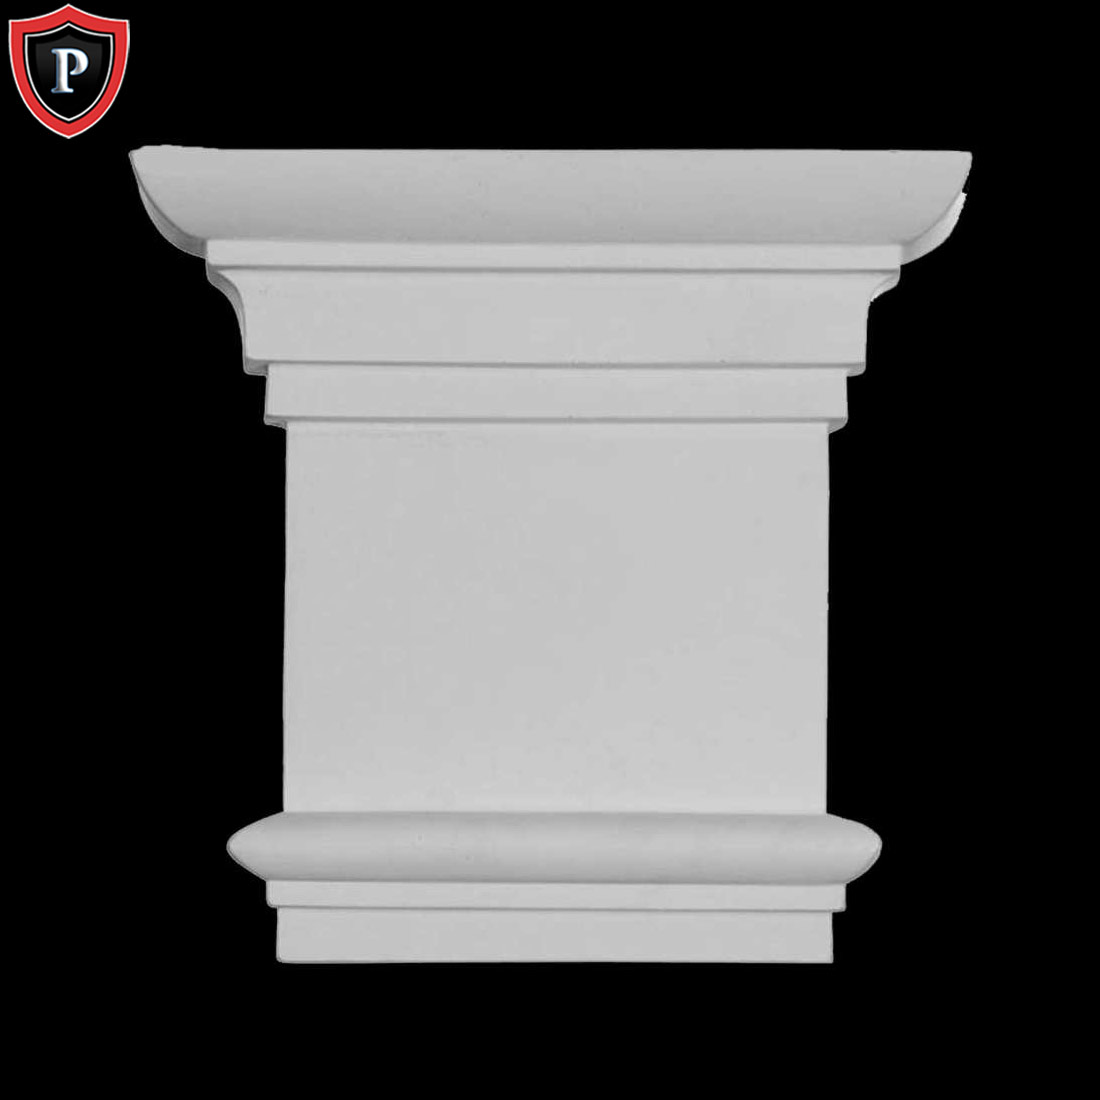 Traditional Pilaster Capitals Polyurethane Material 8